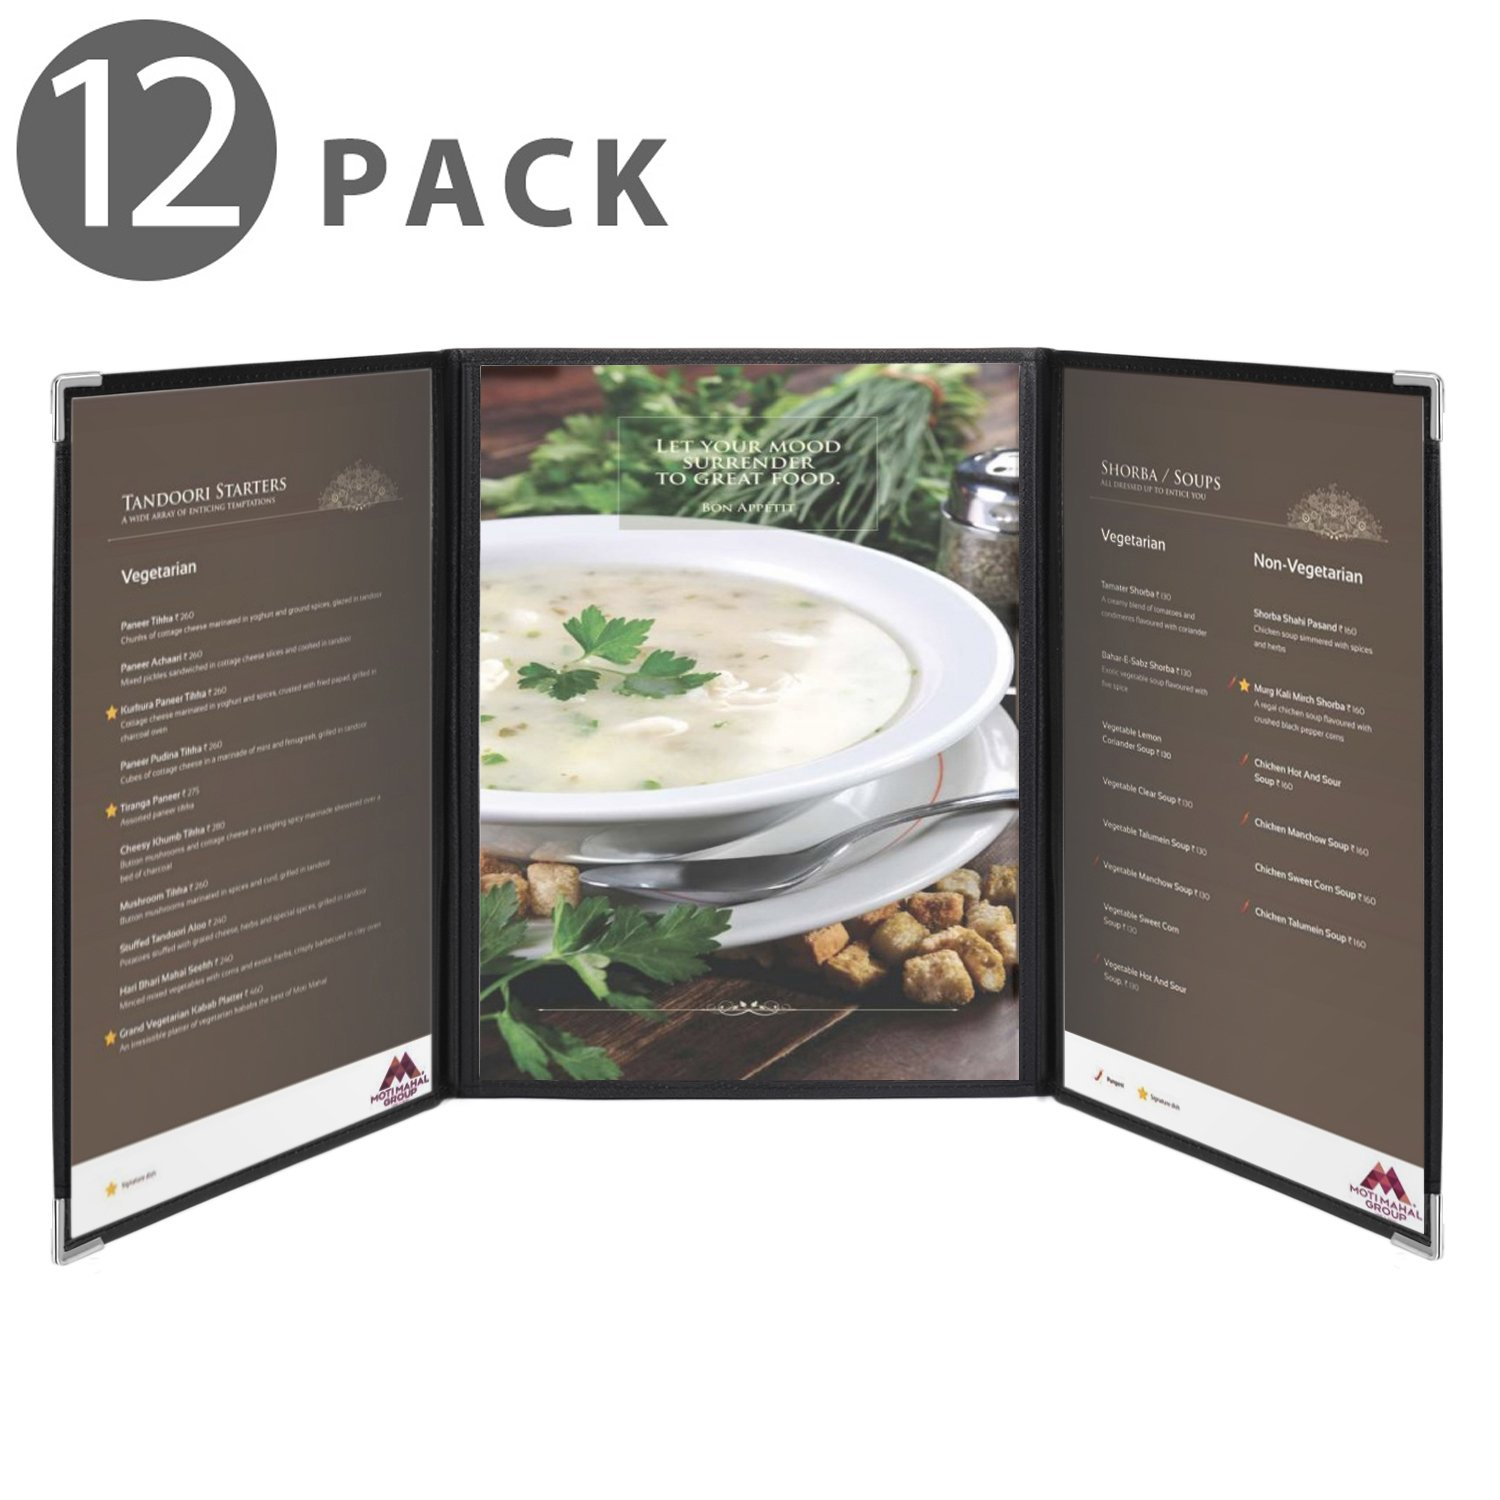 Flexzion Menu Covers Fits 9.4'' x 12.4'' Paper - Restaurant Triple Stitched Folder Sleeves Order Book 3 Pages 6 View with Clear PVC Sheets Black Binding for Deli Cafe Drink Bar (12 Pack)